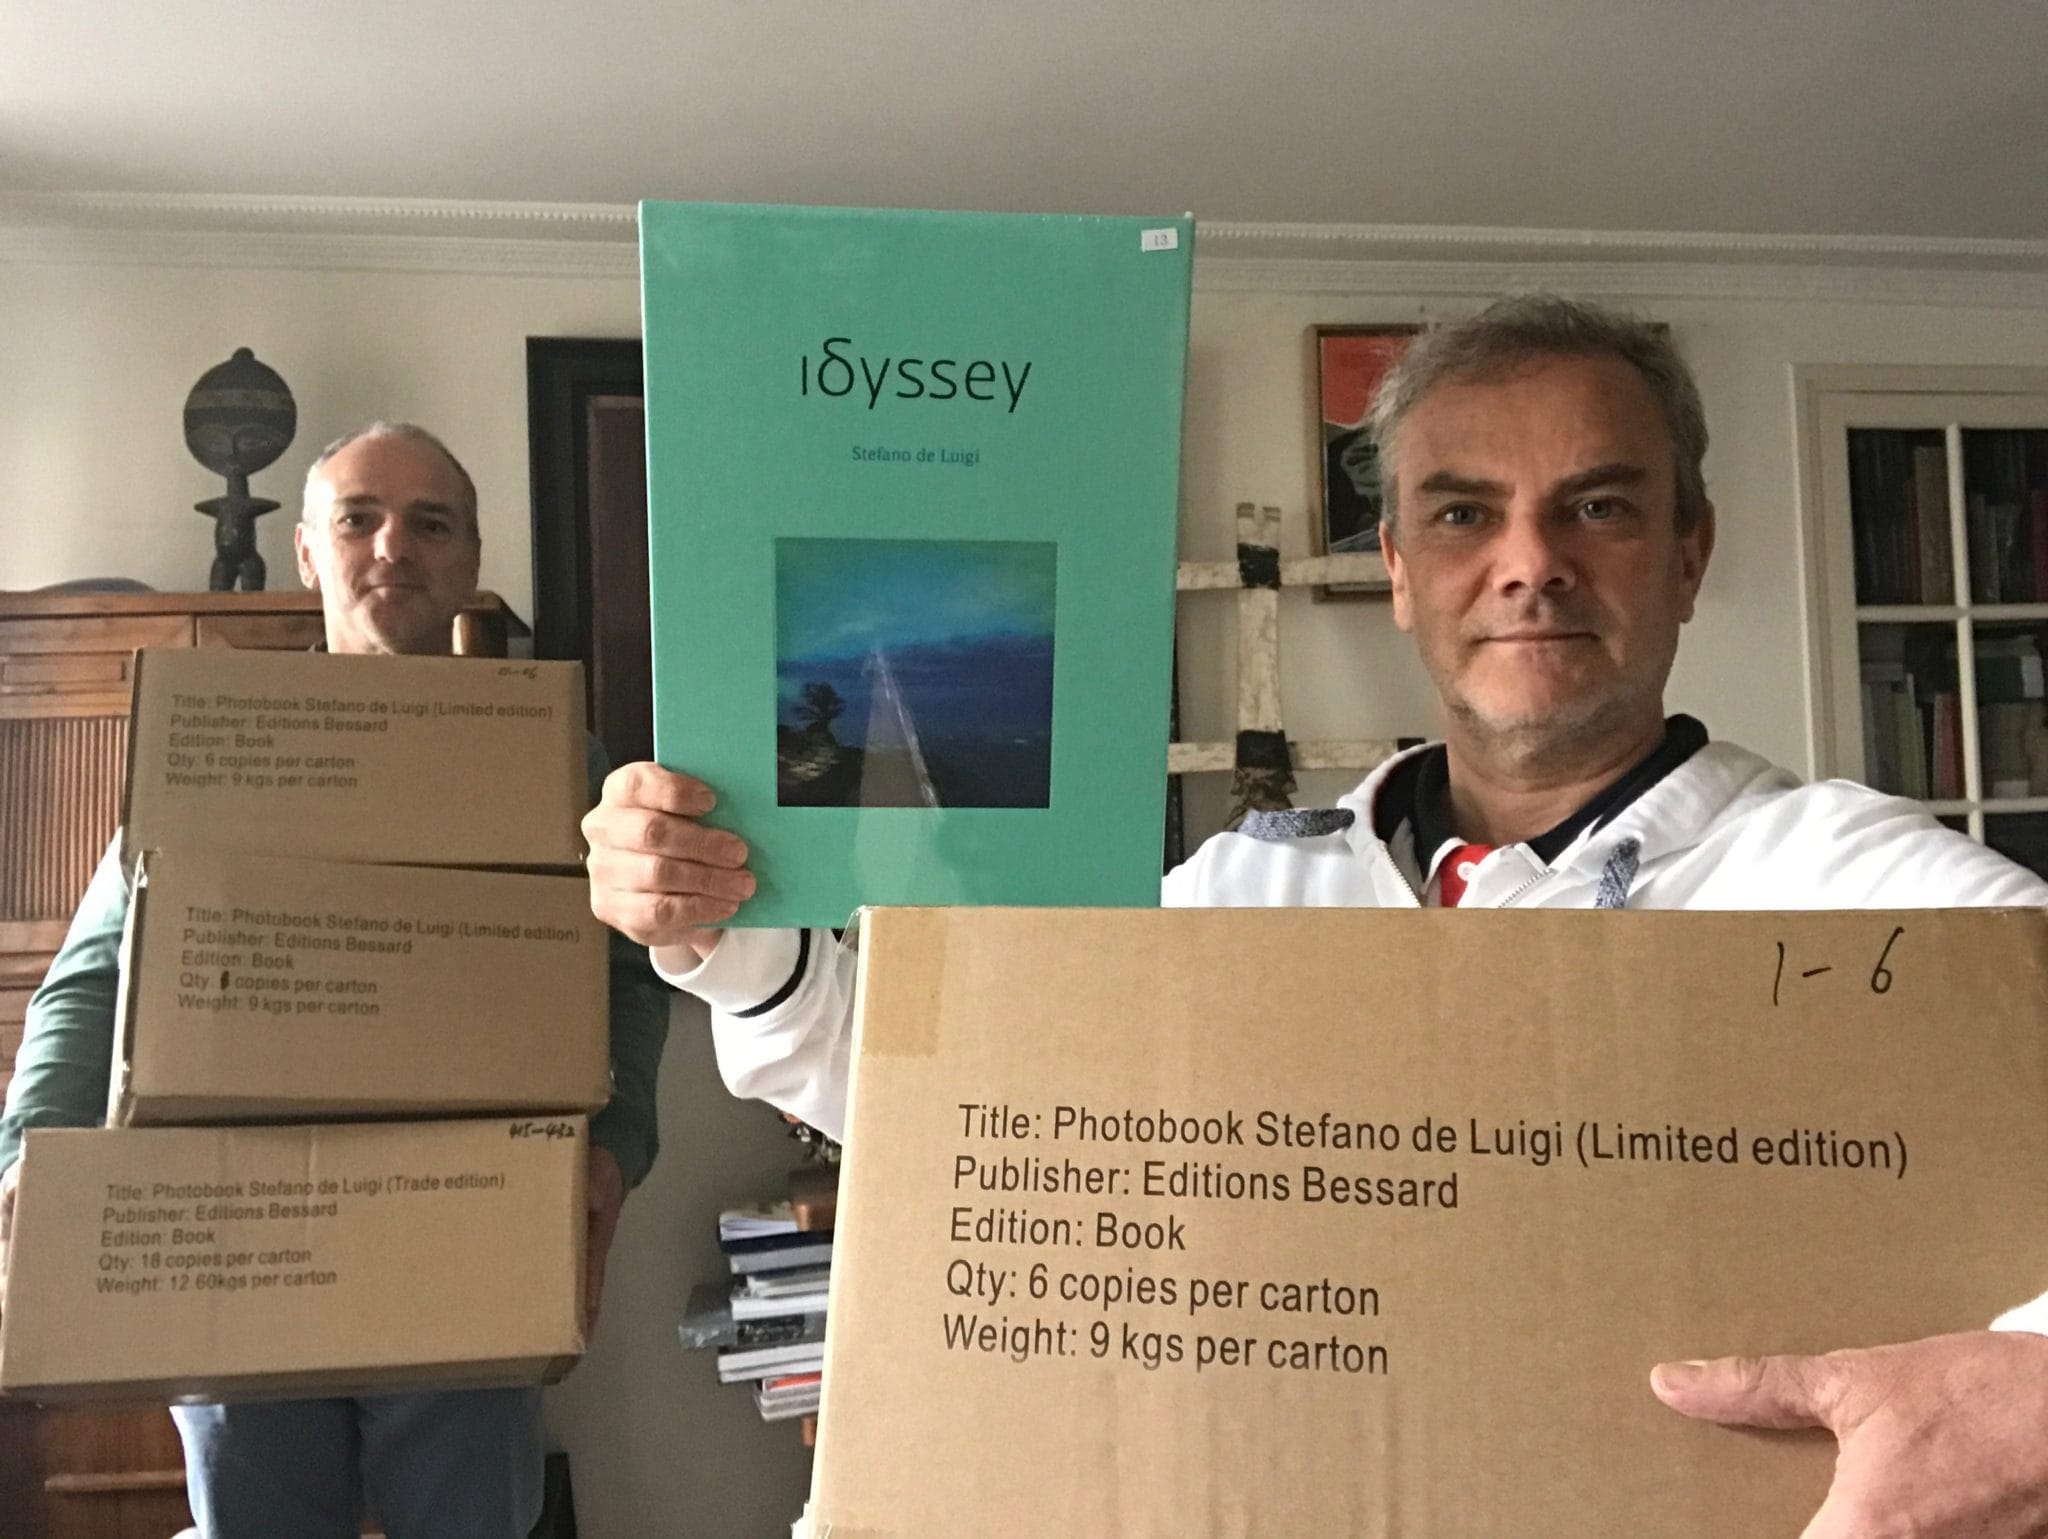 Finally #Idssey has arrived after a long trip on boat, Stefano De Luigi and Pierre Bessard the warehousemen, workmen of the book, discharge the boxes 12,6 kg (trade edition) & 9 kg (artist edition) each, a limited edition of 500 copies, all photobooks arrived by plane was sold out, it was time that they arrive. Editions Bessard available on our website Now! with a signed c print…